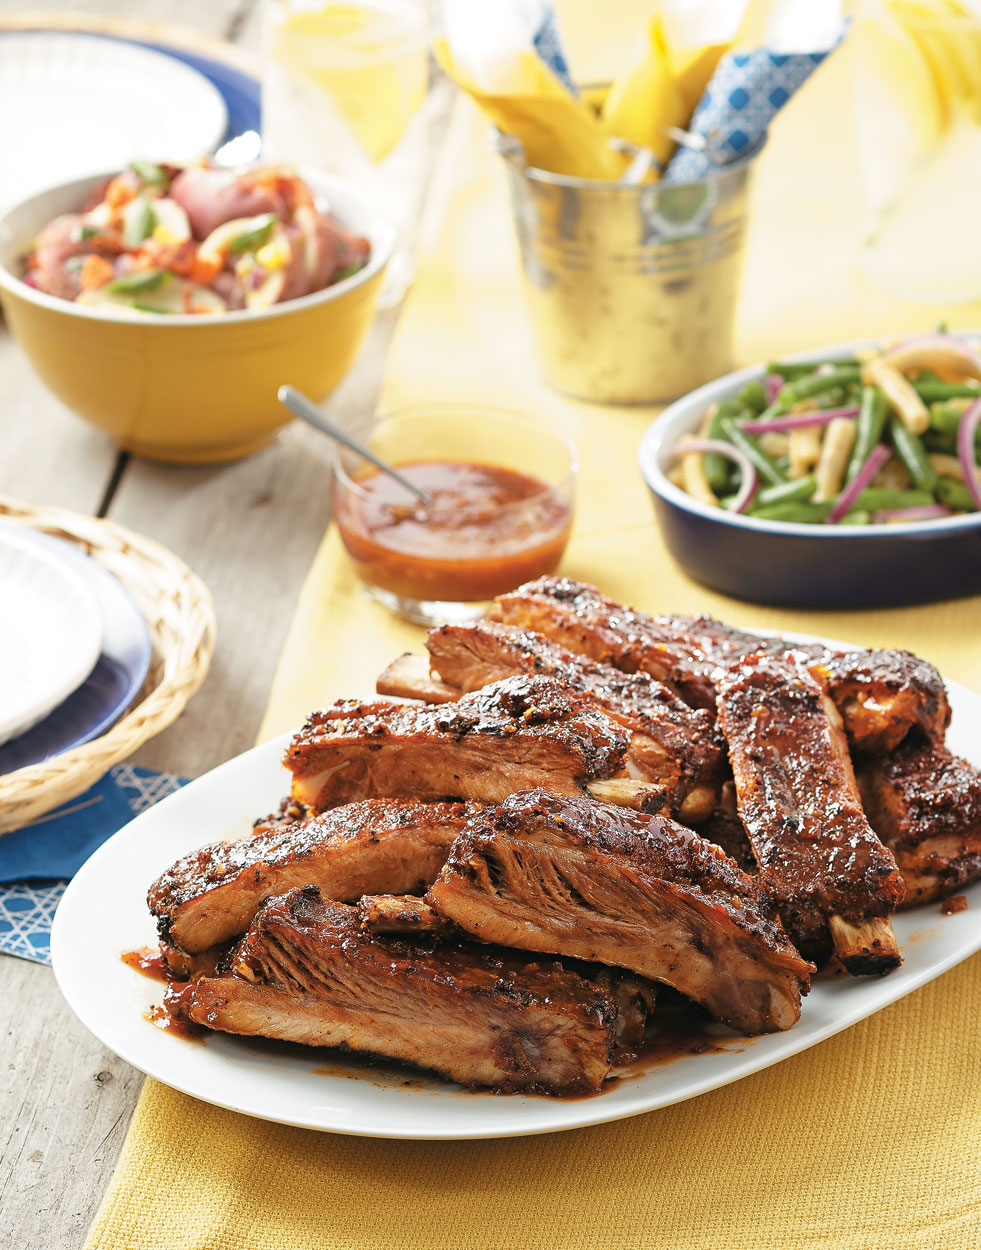 Smoky Grilled St. Louis-Style Ribs